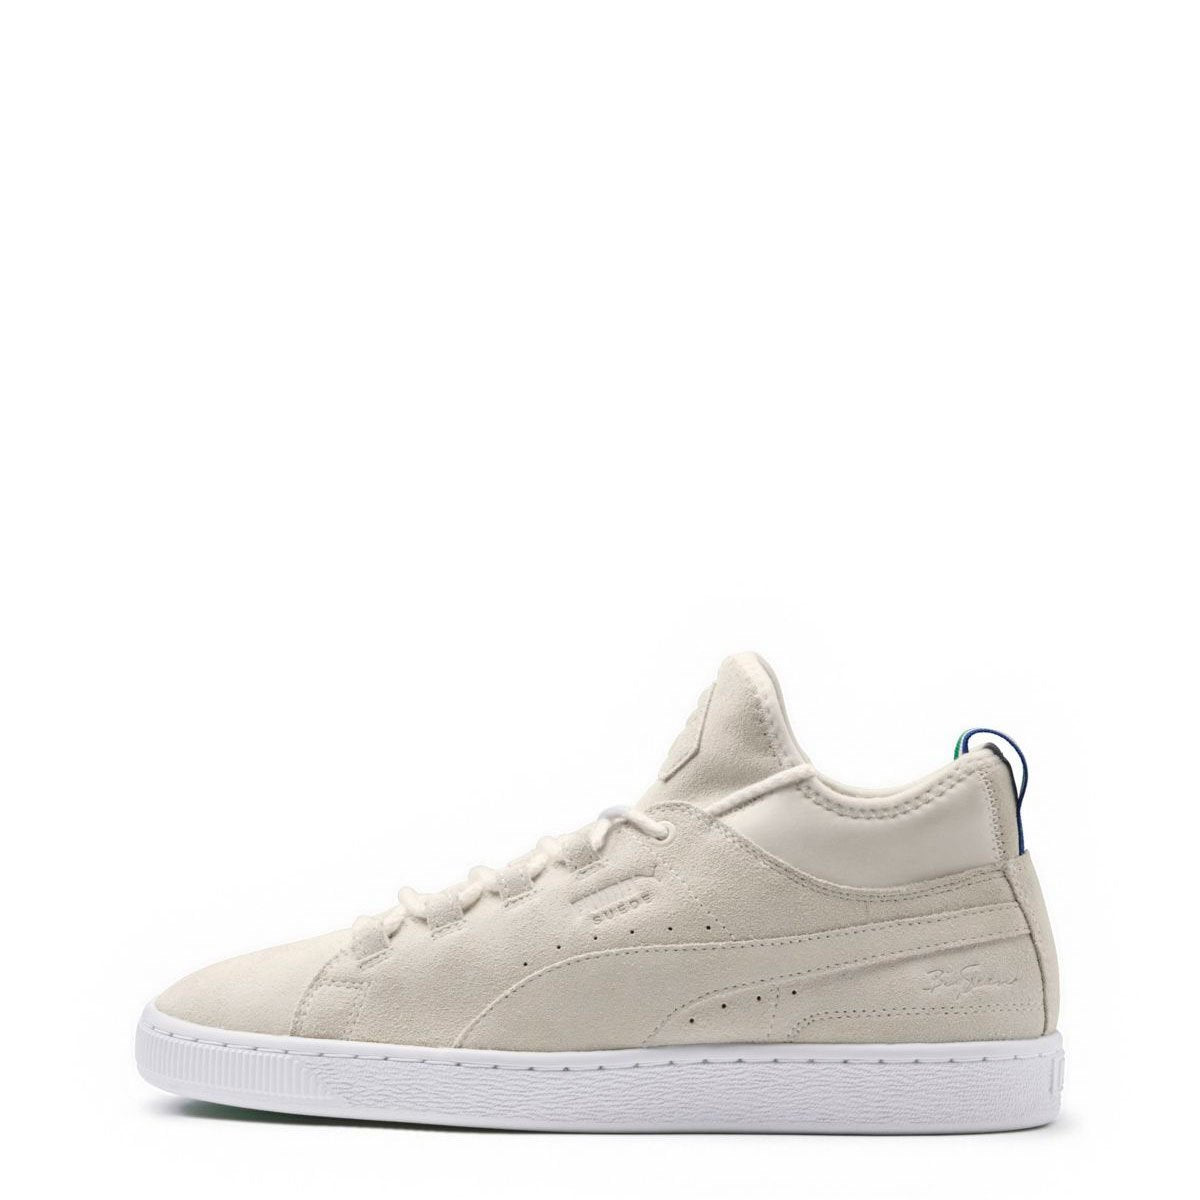 shop variety of designs and colors search for original PUMA SUEDE MID CLASSIC BIG SEAN